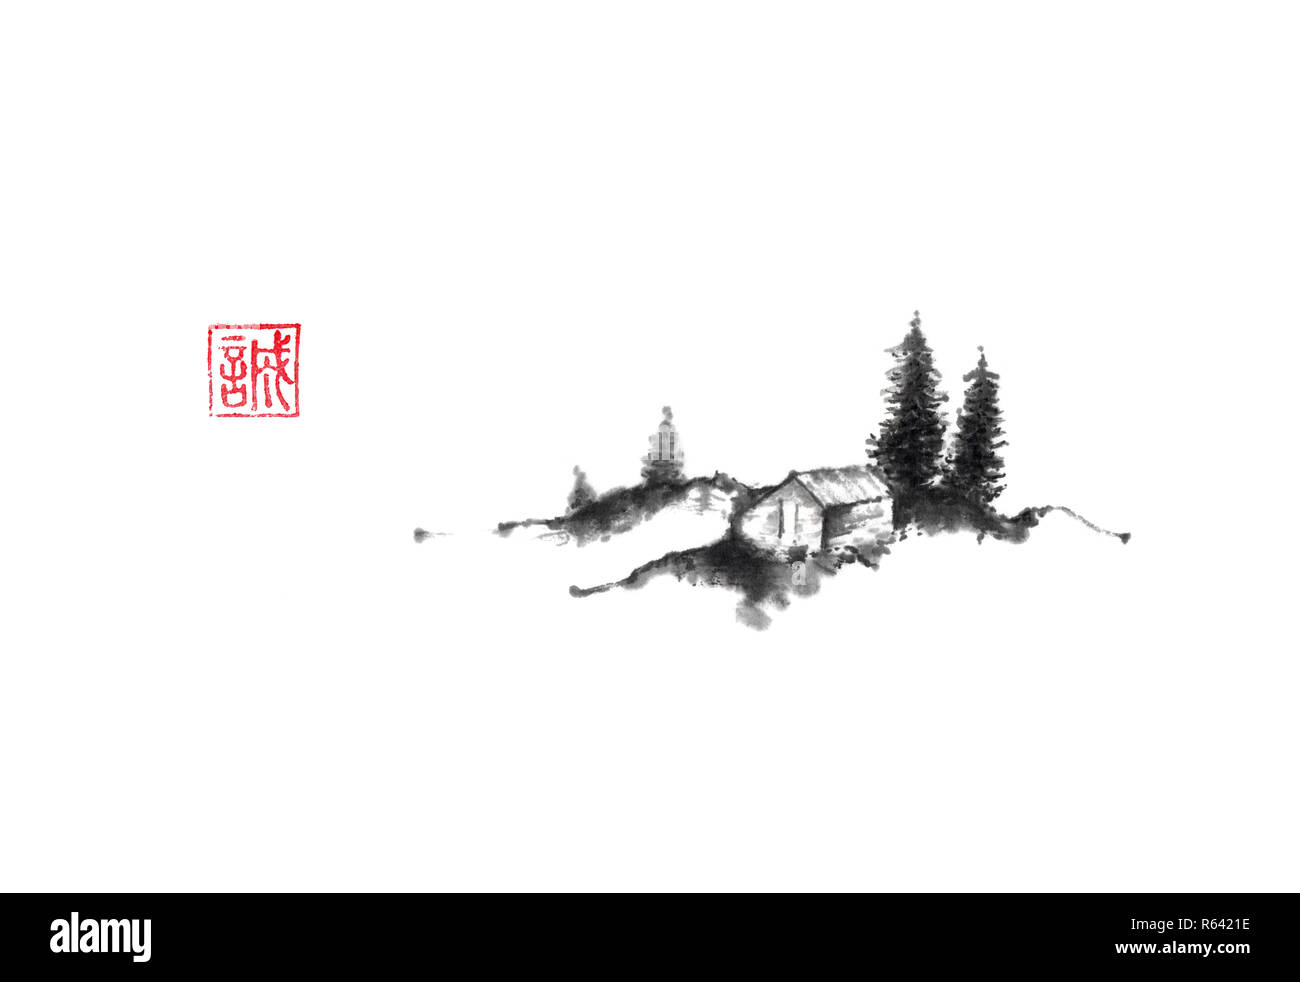 House in the hills Japanese style original sumi-e ink painting. Hieroglyph featured means sincerity. Great for greeting cards or texture design. - Stock Image